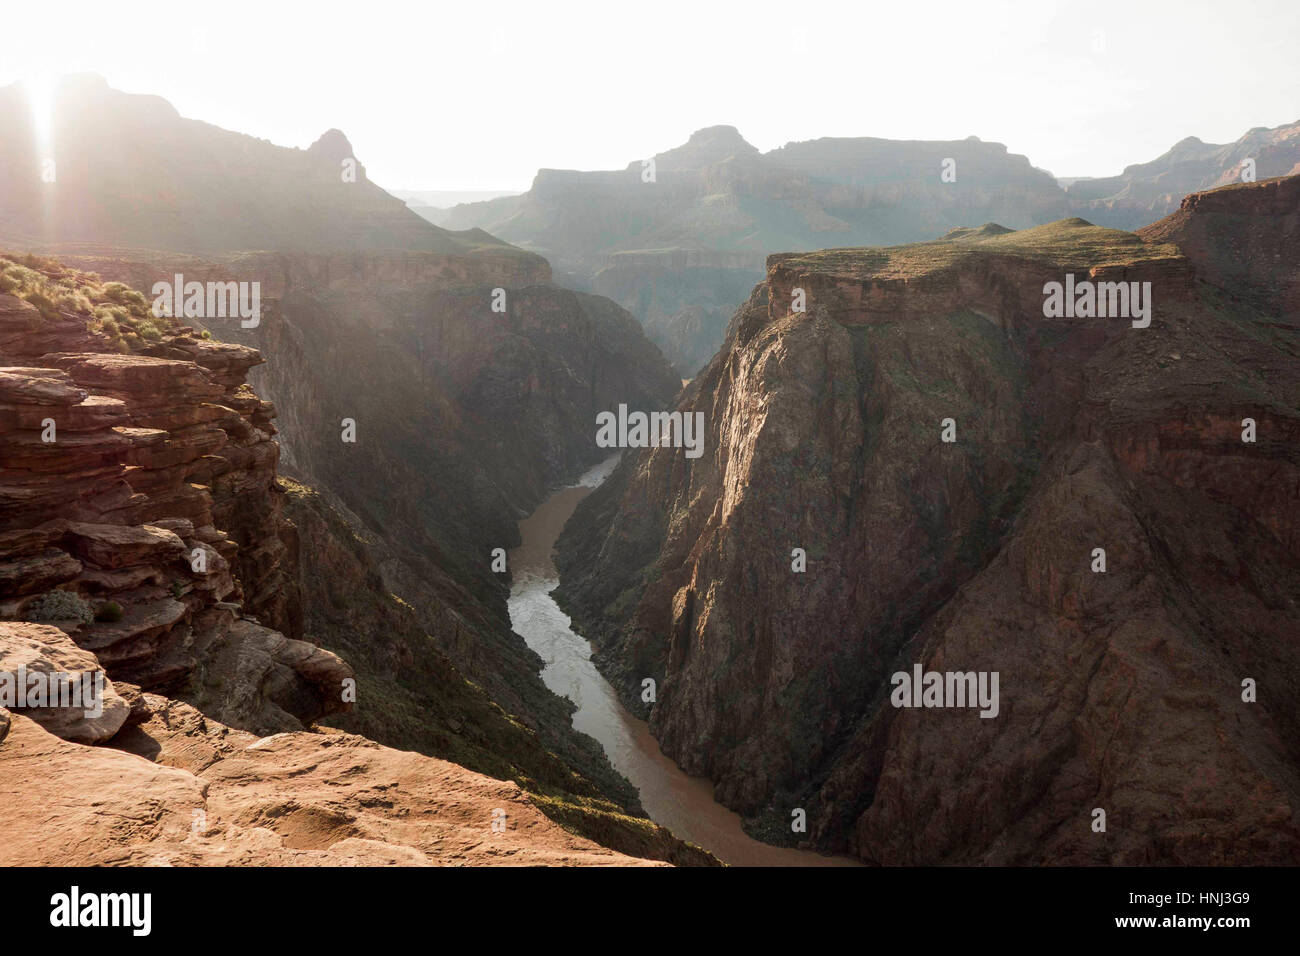 High angel view of valley at grand canyon in sunny day - Stock Image